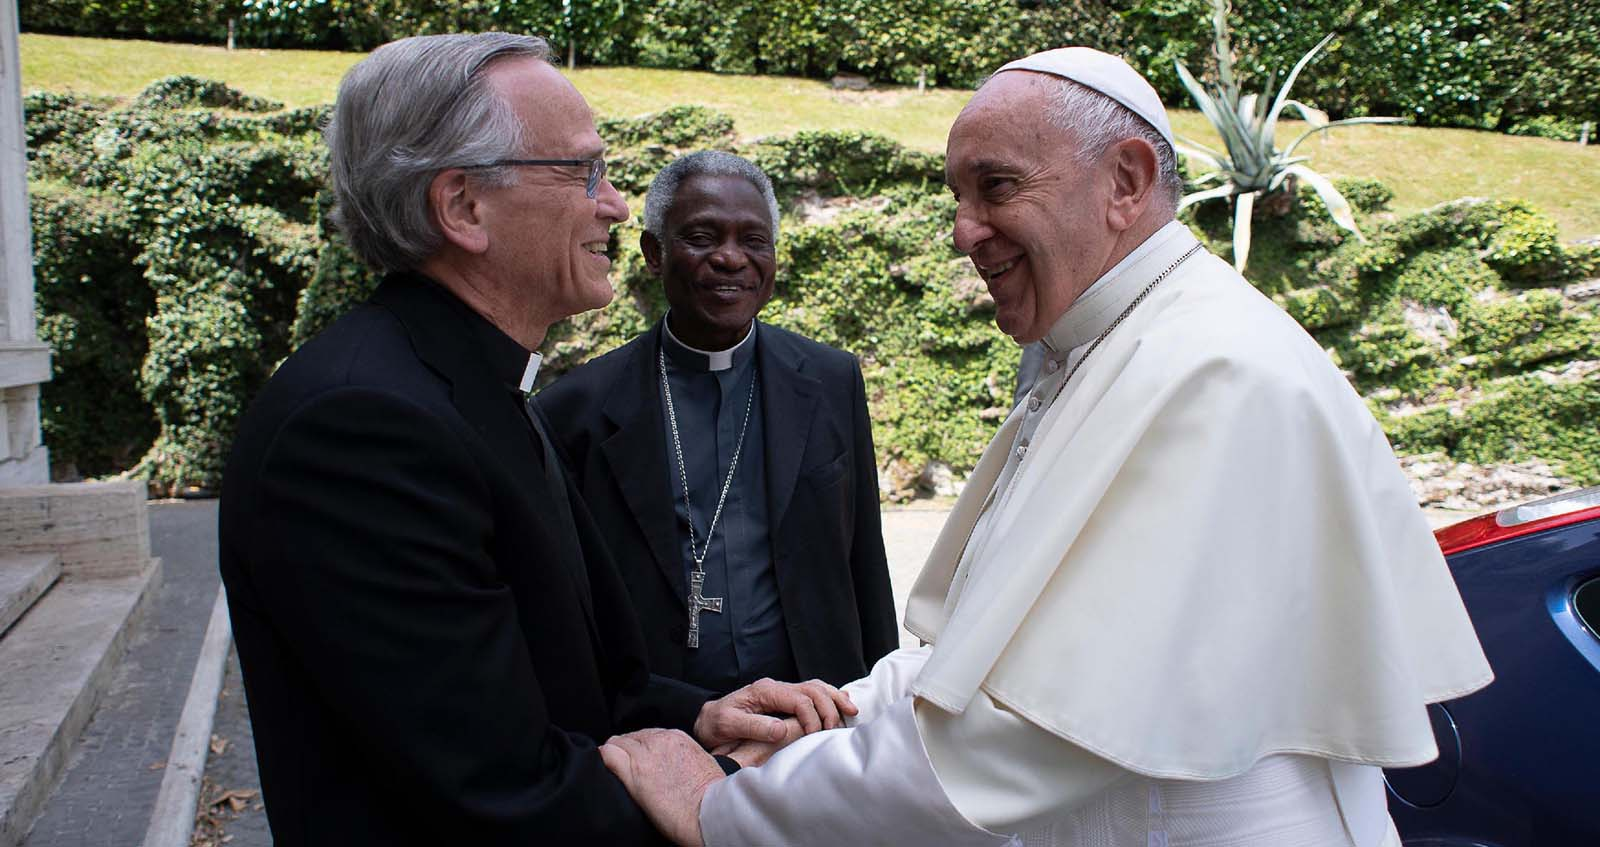 Fr. Jenkins shakes Pope Francis' hands.